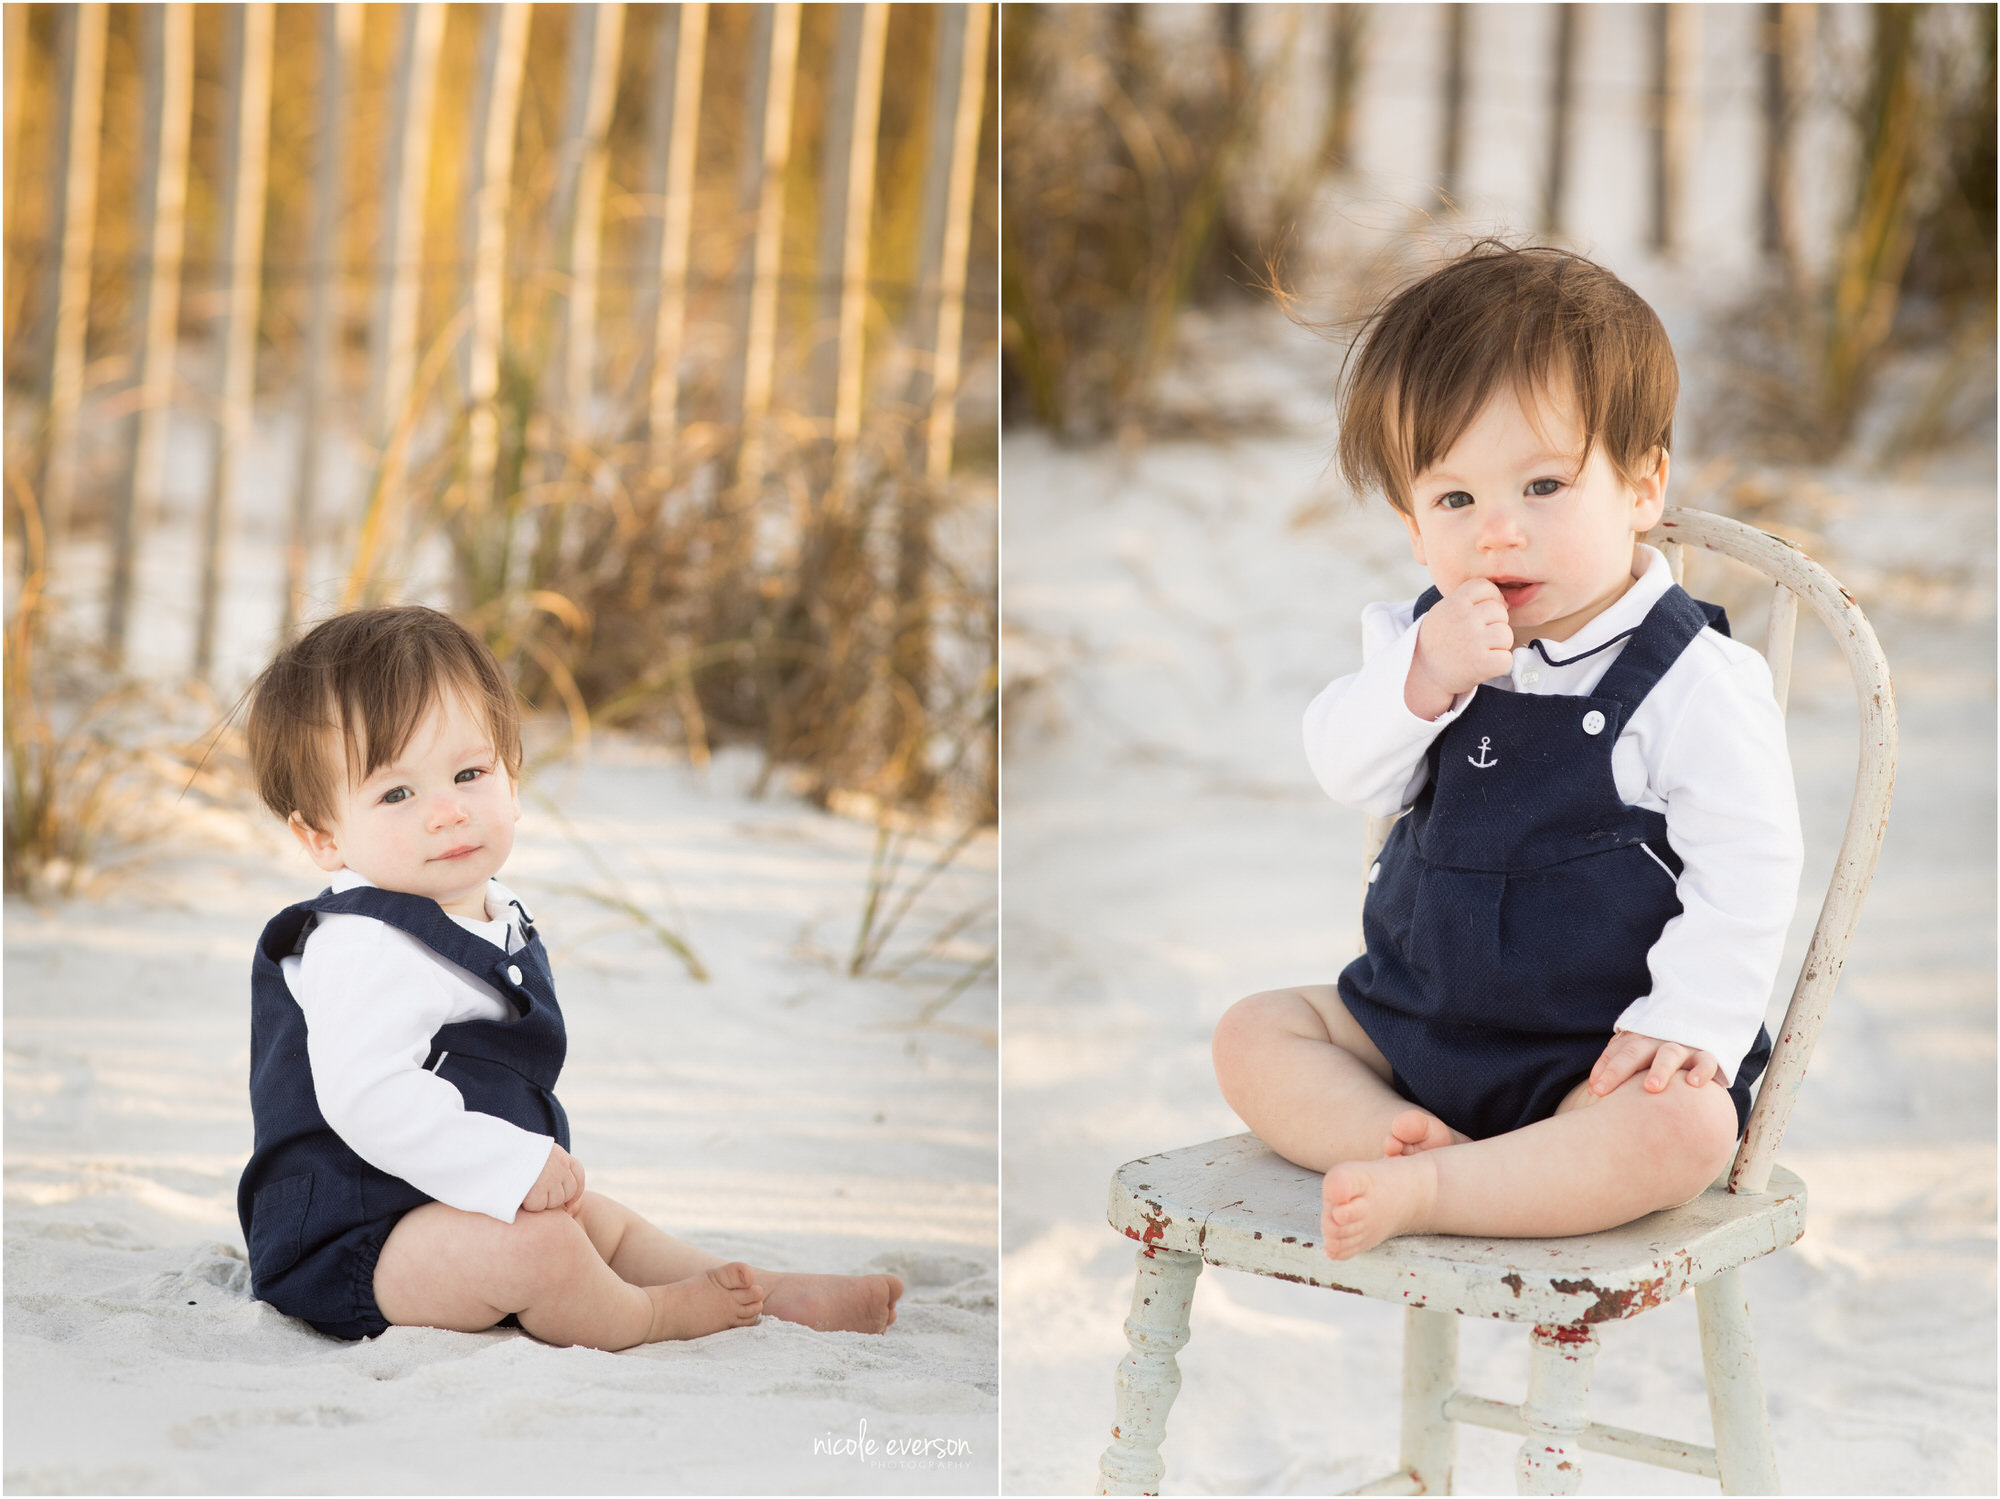 One year old baby boy in overalls plays on Seaside Beach. Photographed by Nicole Everson Photography.